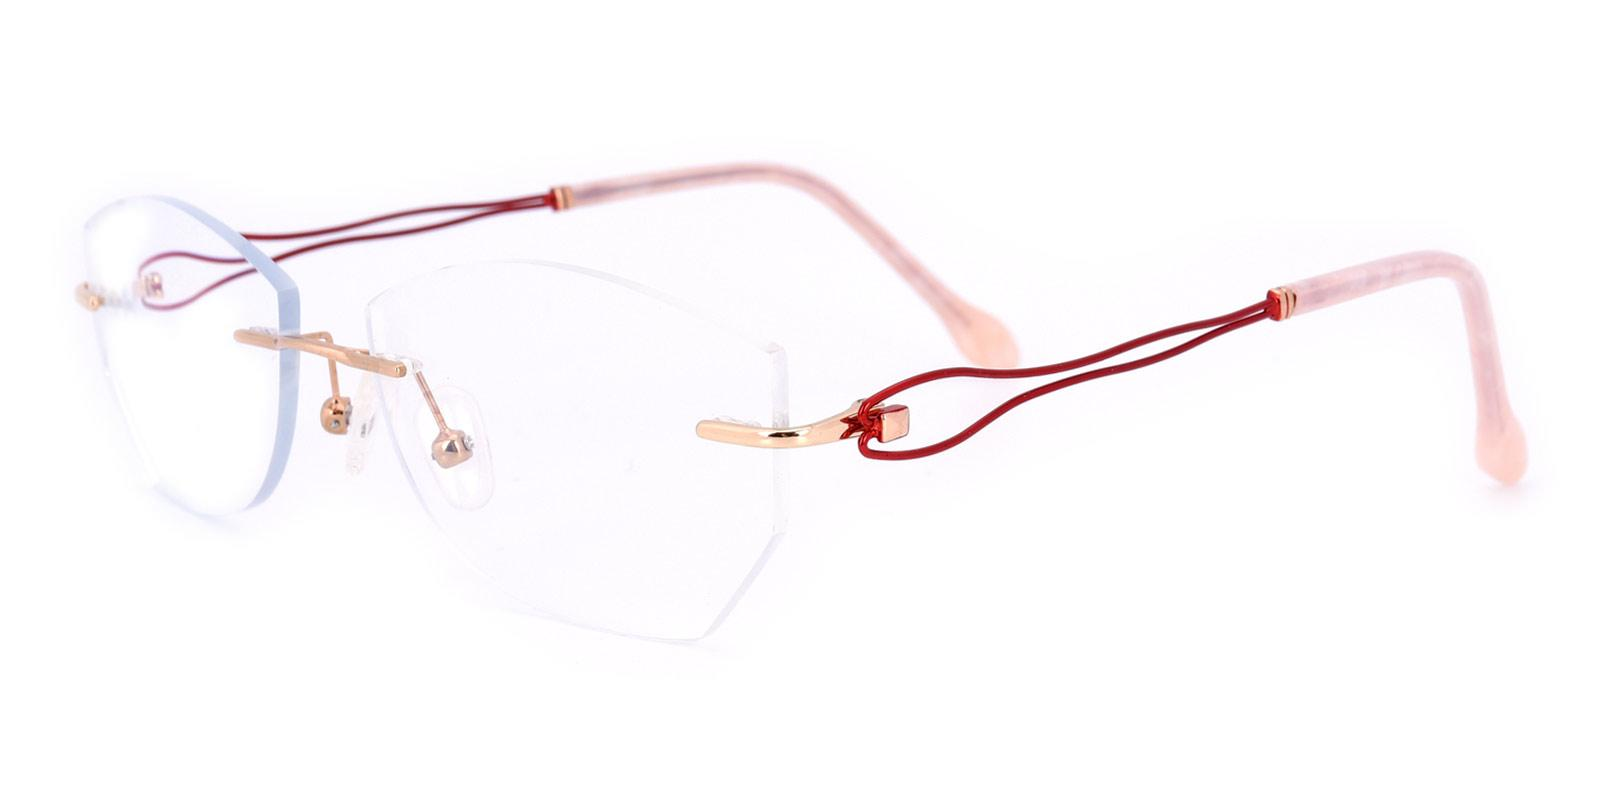 Ivanka-Red-Varieties-Titanium-Eyeglasses-additional1